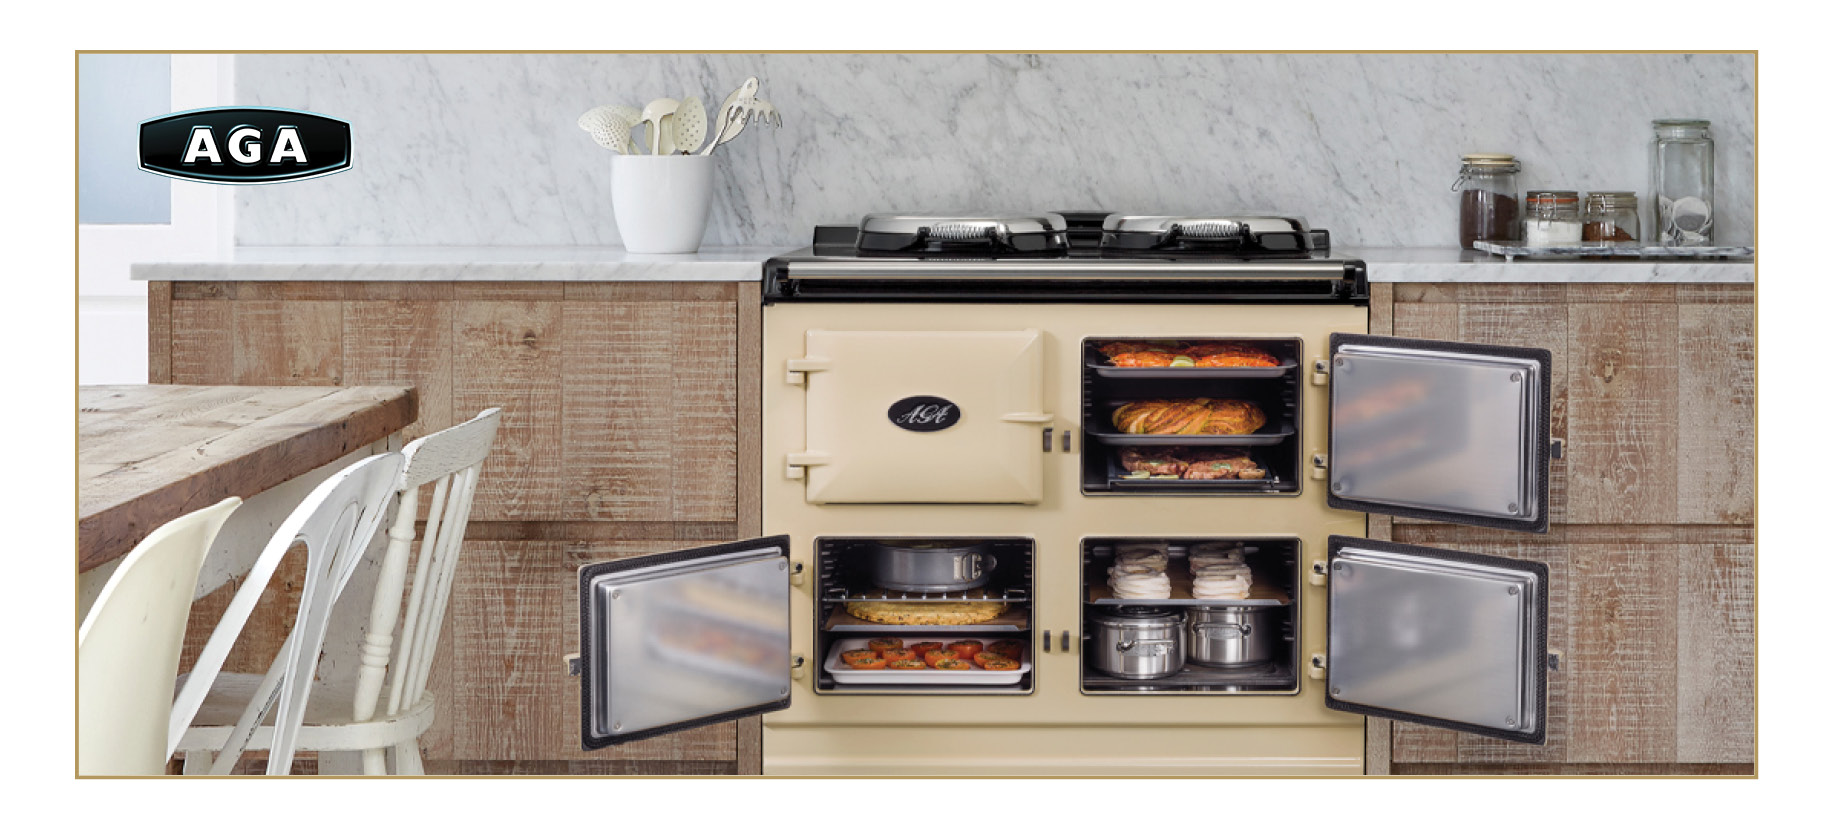 AGA Classic Total Control Range in taupe with four open doors featuring food in the oven.